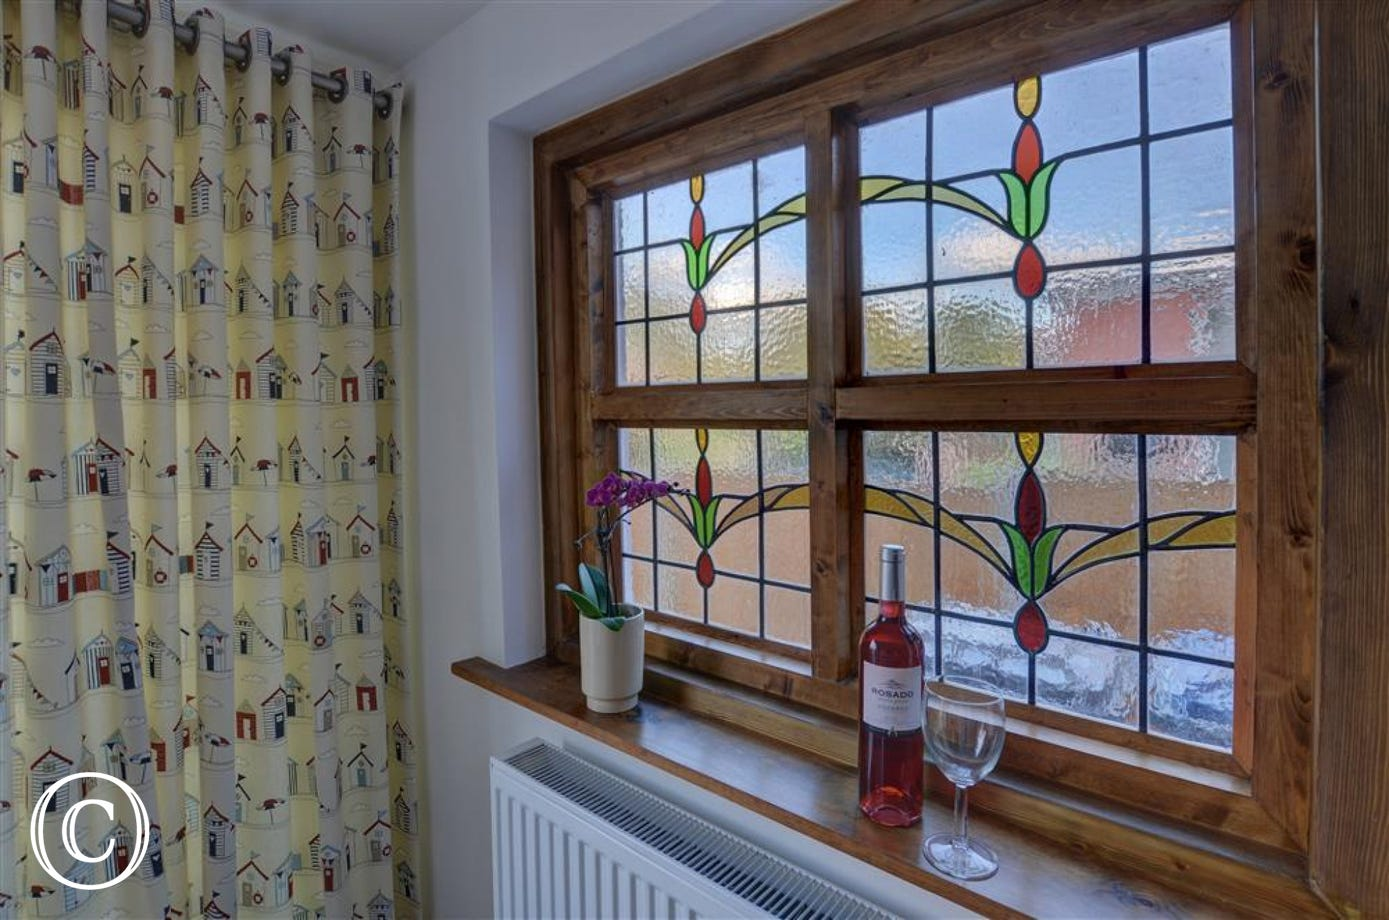 This pretty window with stained glass features in the dining area makes for a charming focal point whilst gathered at the table.